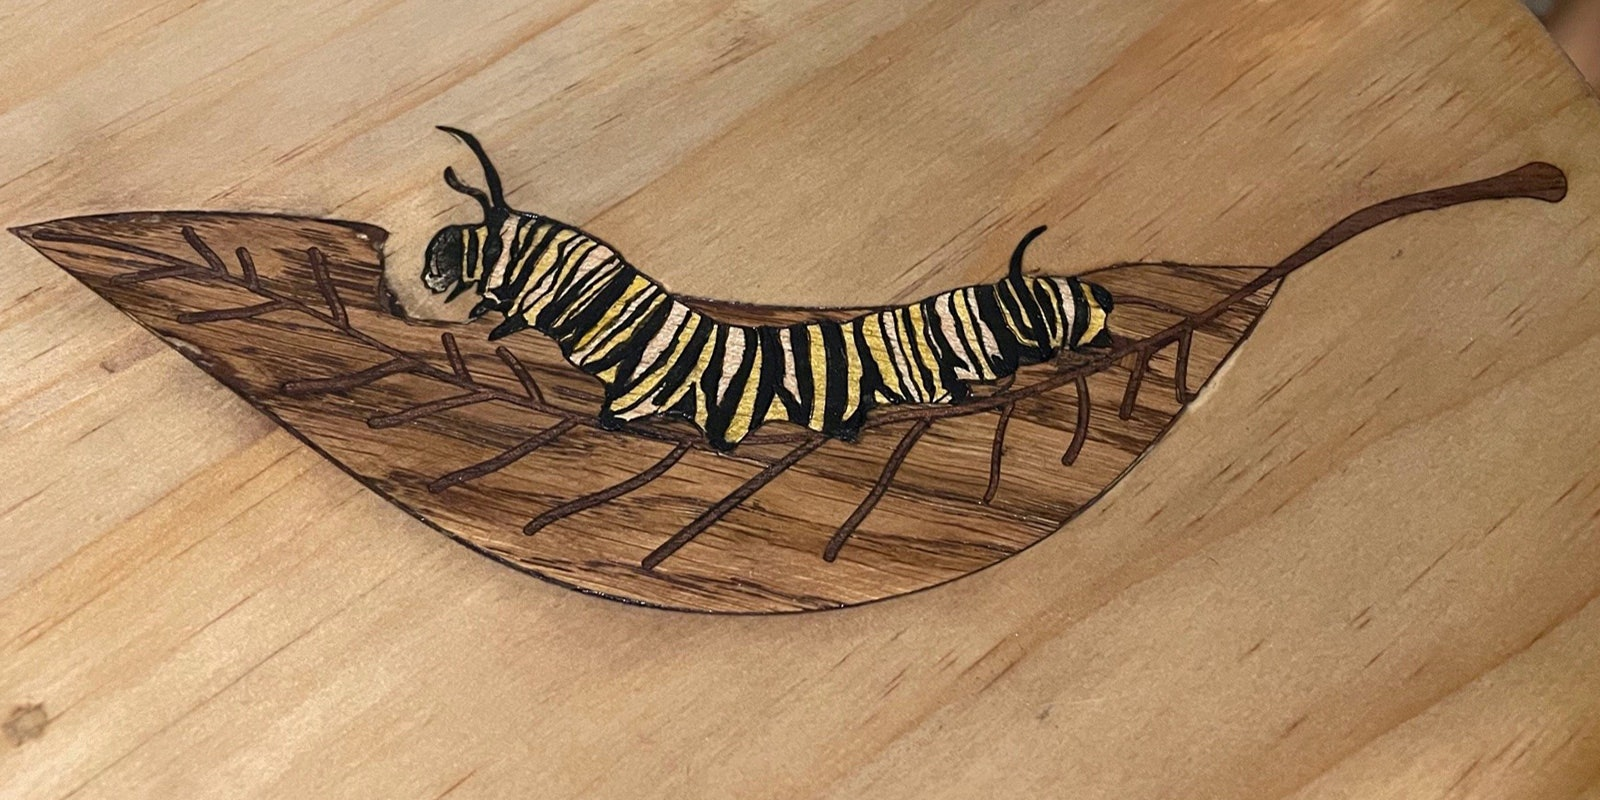 Wood you Like to Learn a New Skill? An Intro to Marquetry